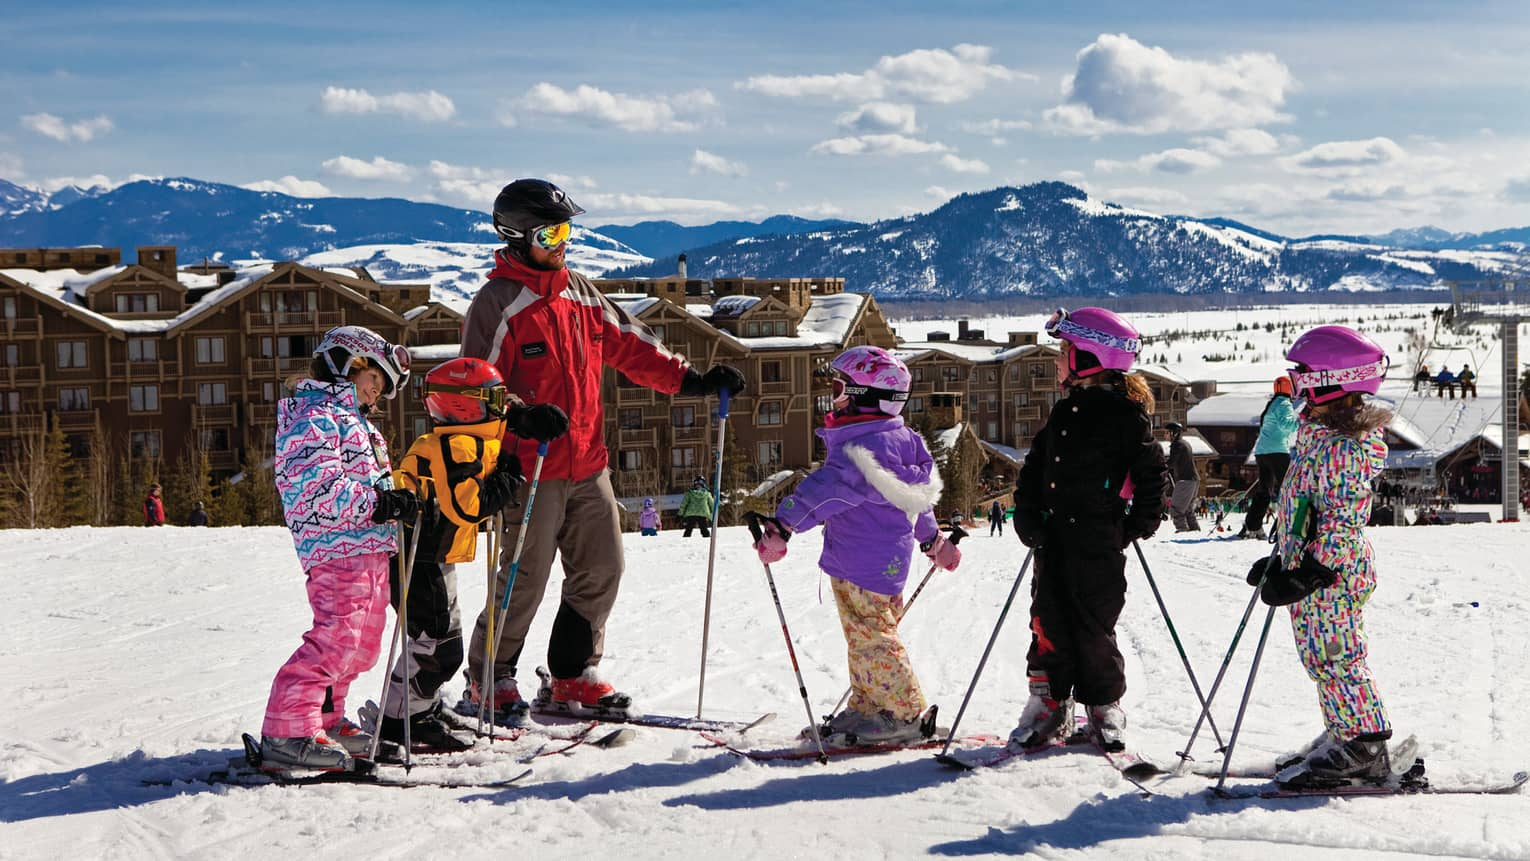 Children wearing skis, winter gear on sunny hill with instructor, hotel in background